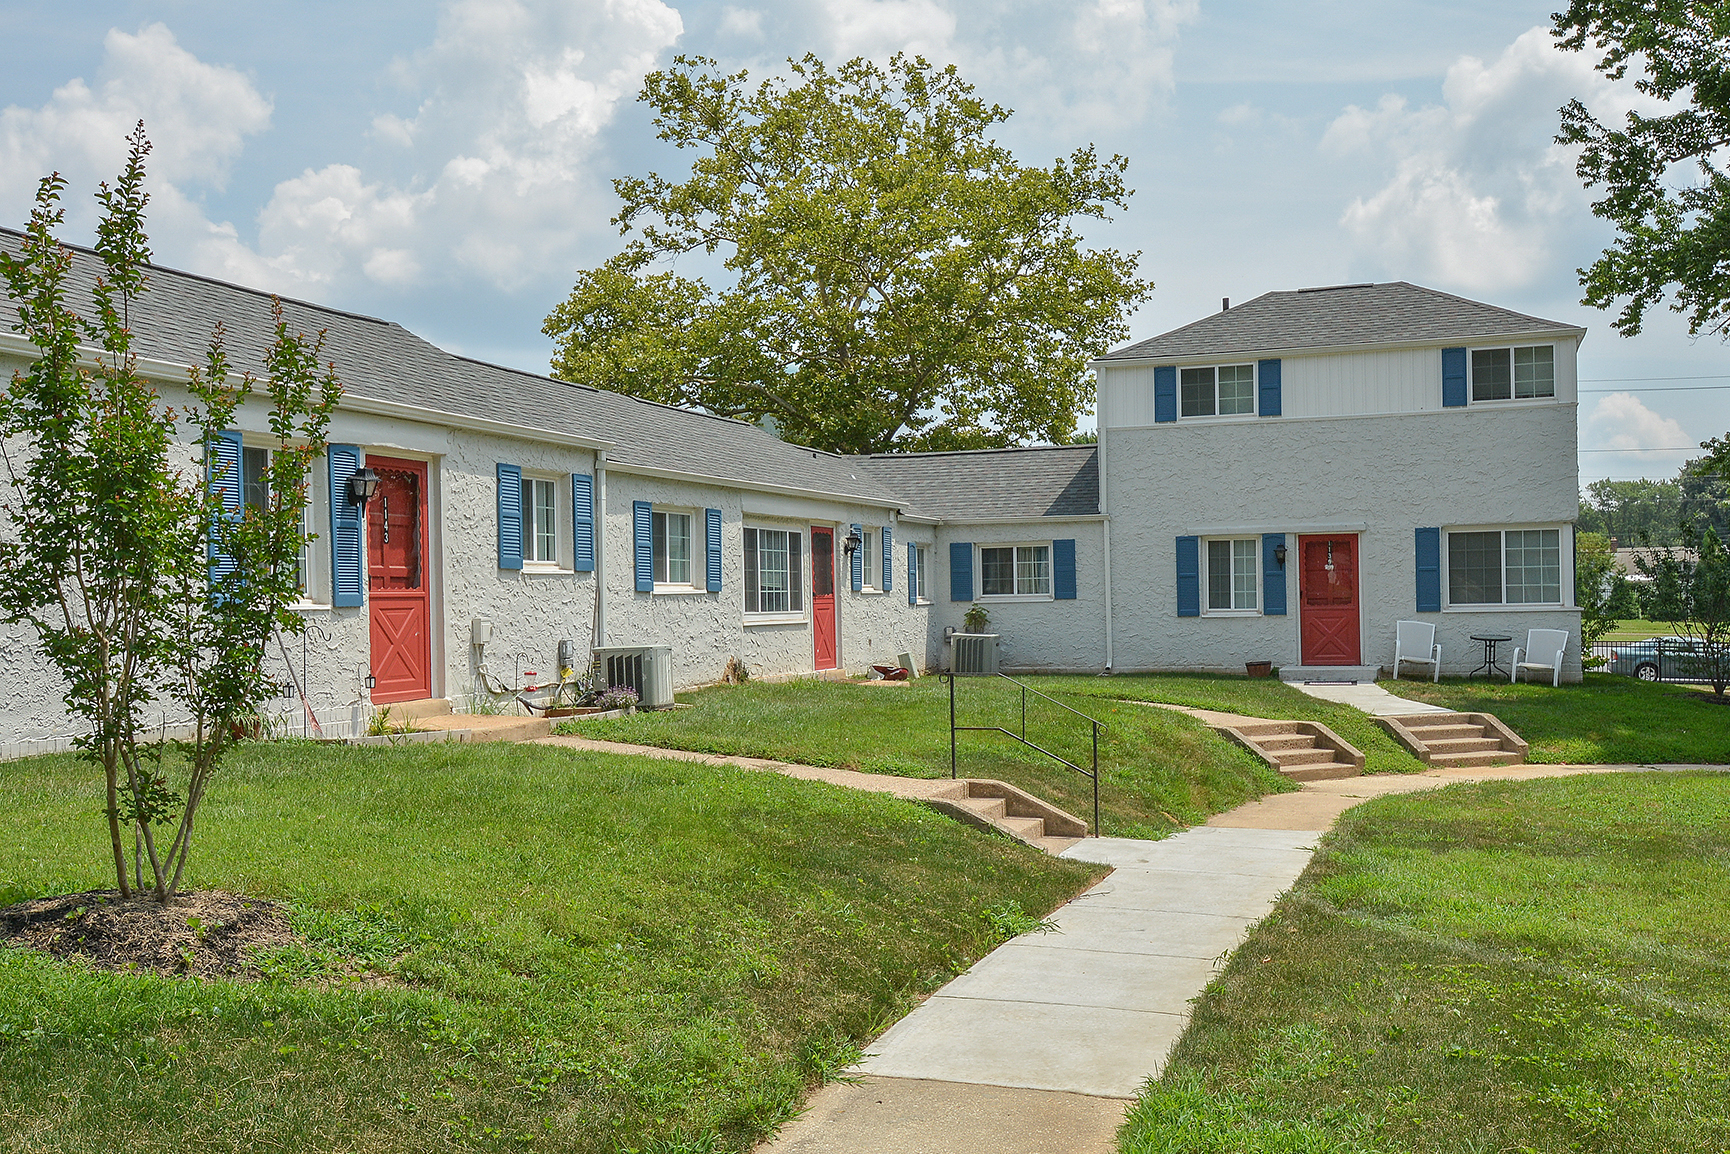 Greenville on 141 Apartments & Townhomes image 7